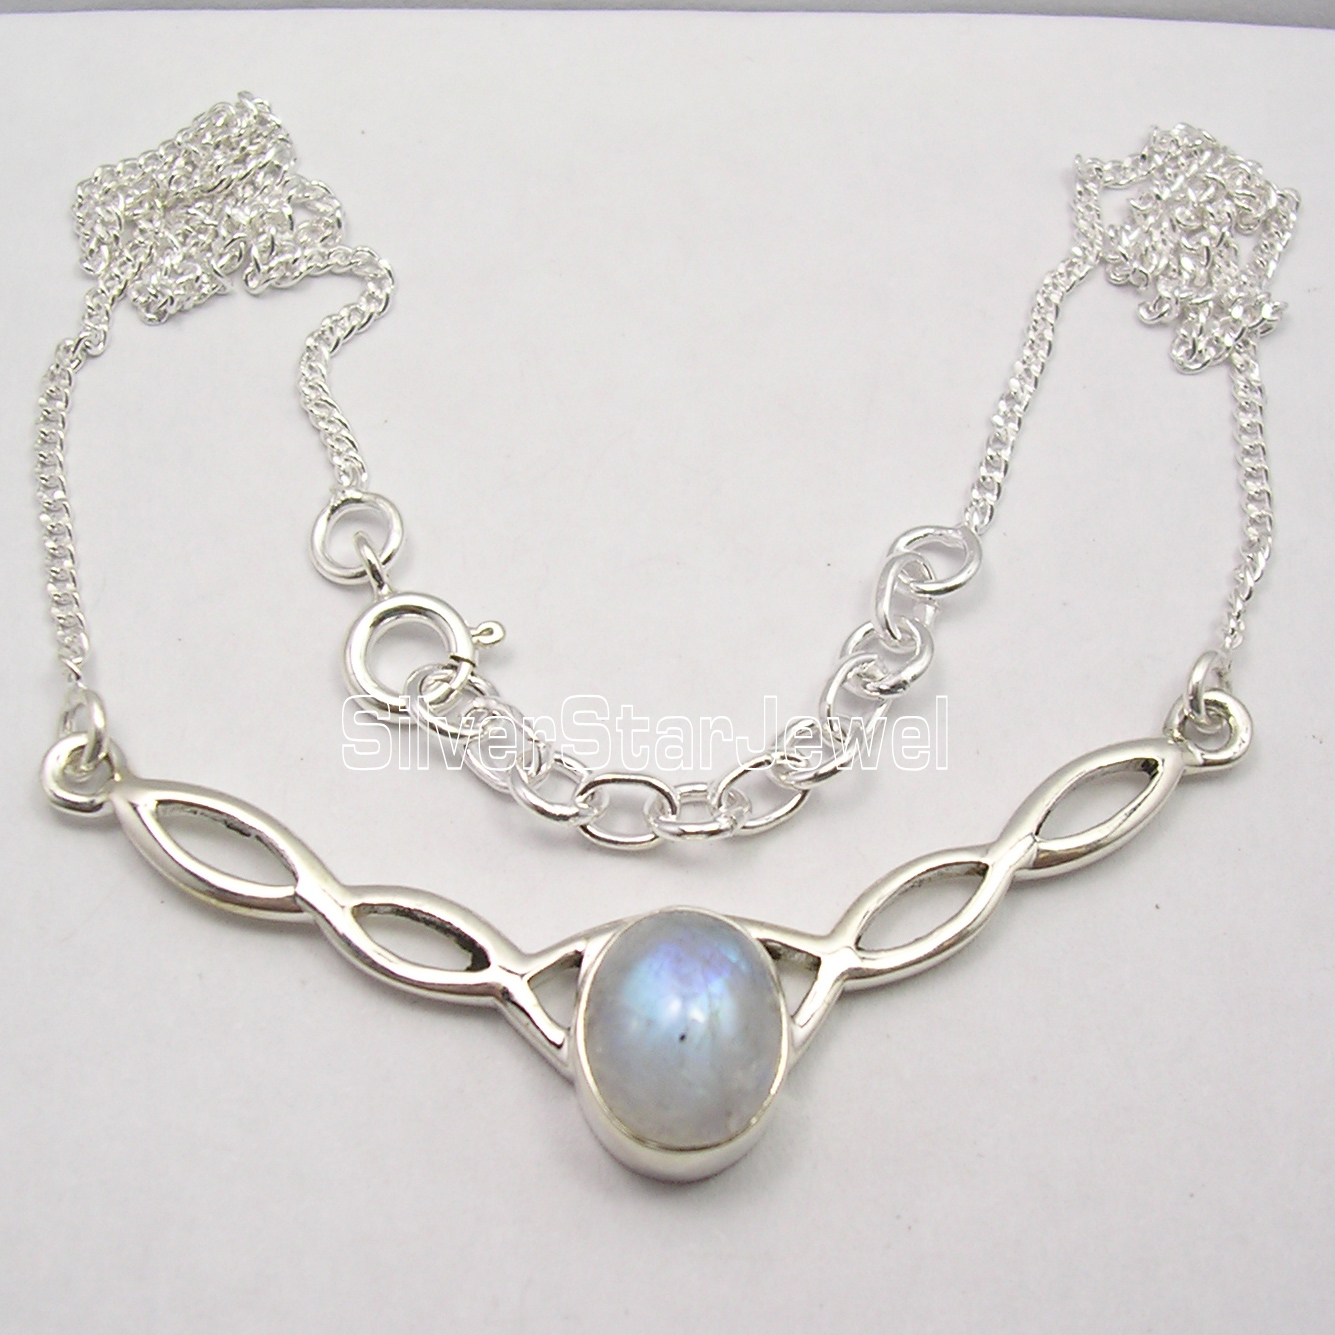 Chanti International Pure Silver Beautiful RAINBOW MOONSTONE WELL MADE Necklace COMBINED SHIPPING петух kelly s cross алюминий 6061 2012 derailleur hanger cross aluminum 6061 alloy 2012